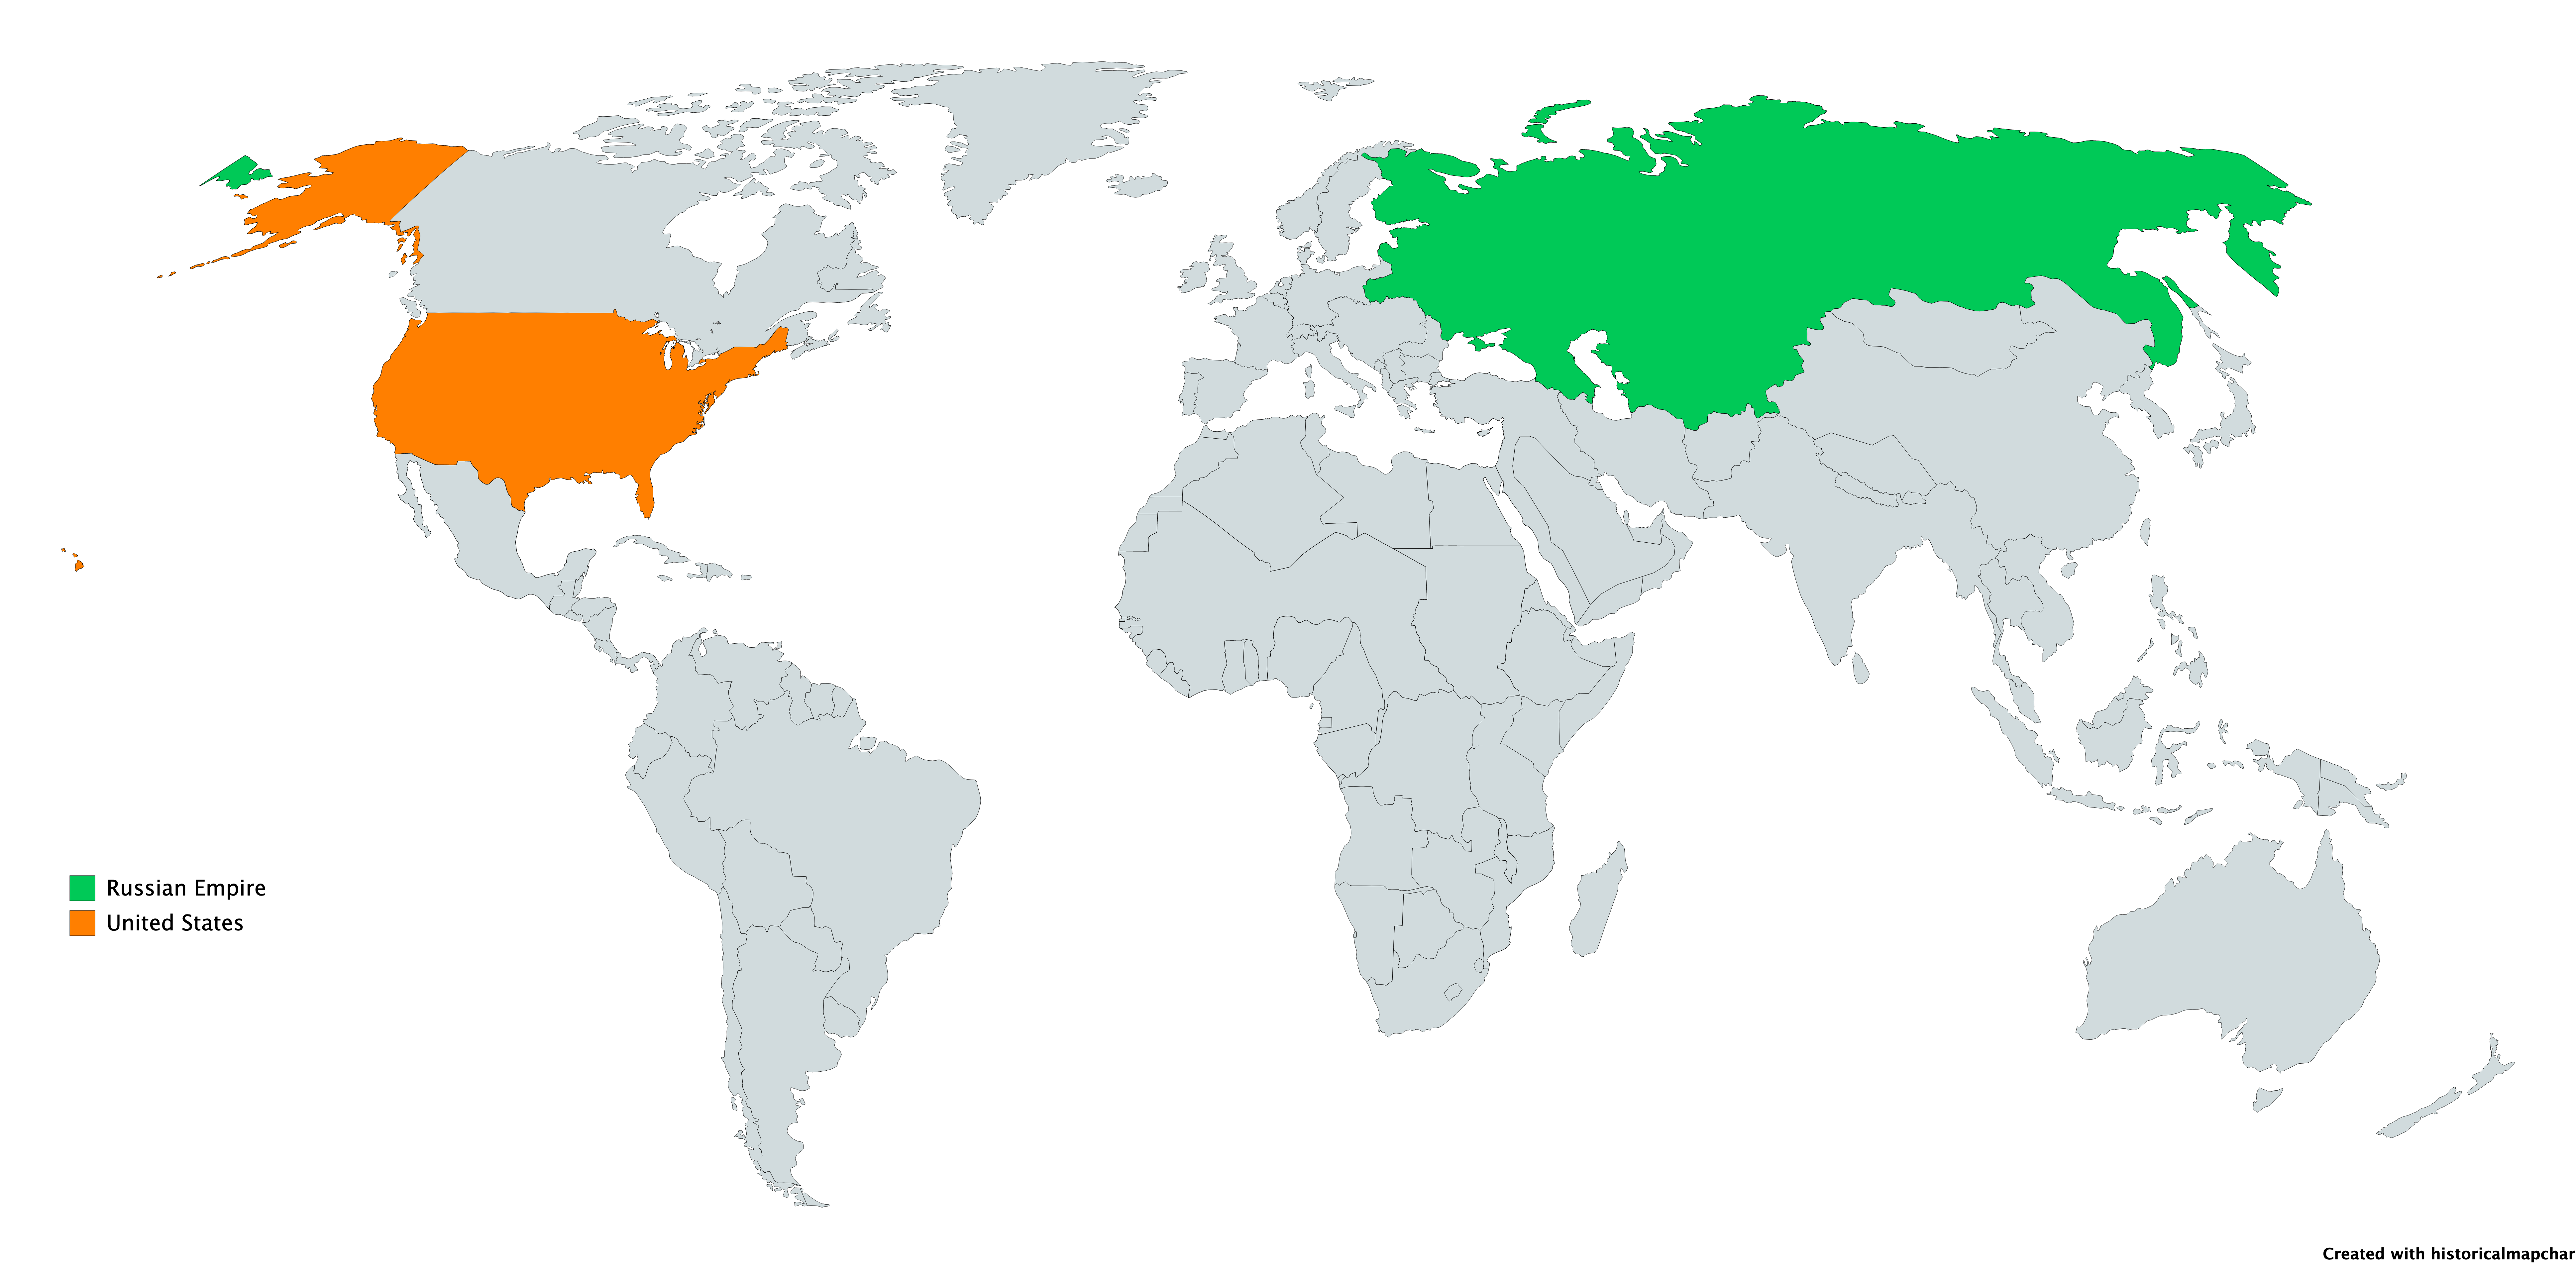 Map Of Us And Russia File:US RussiaEmpire.png   Wikipedia